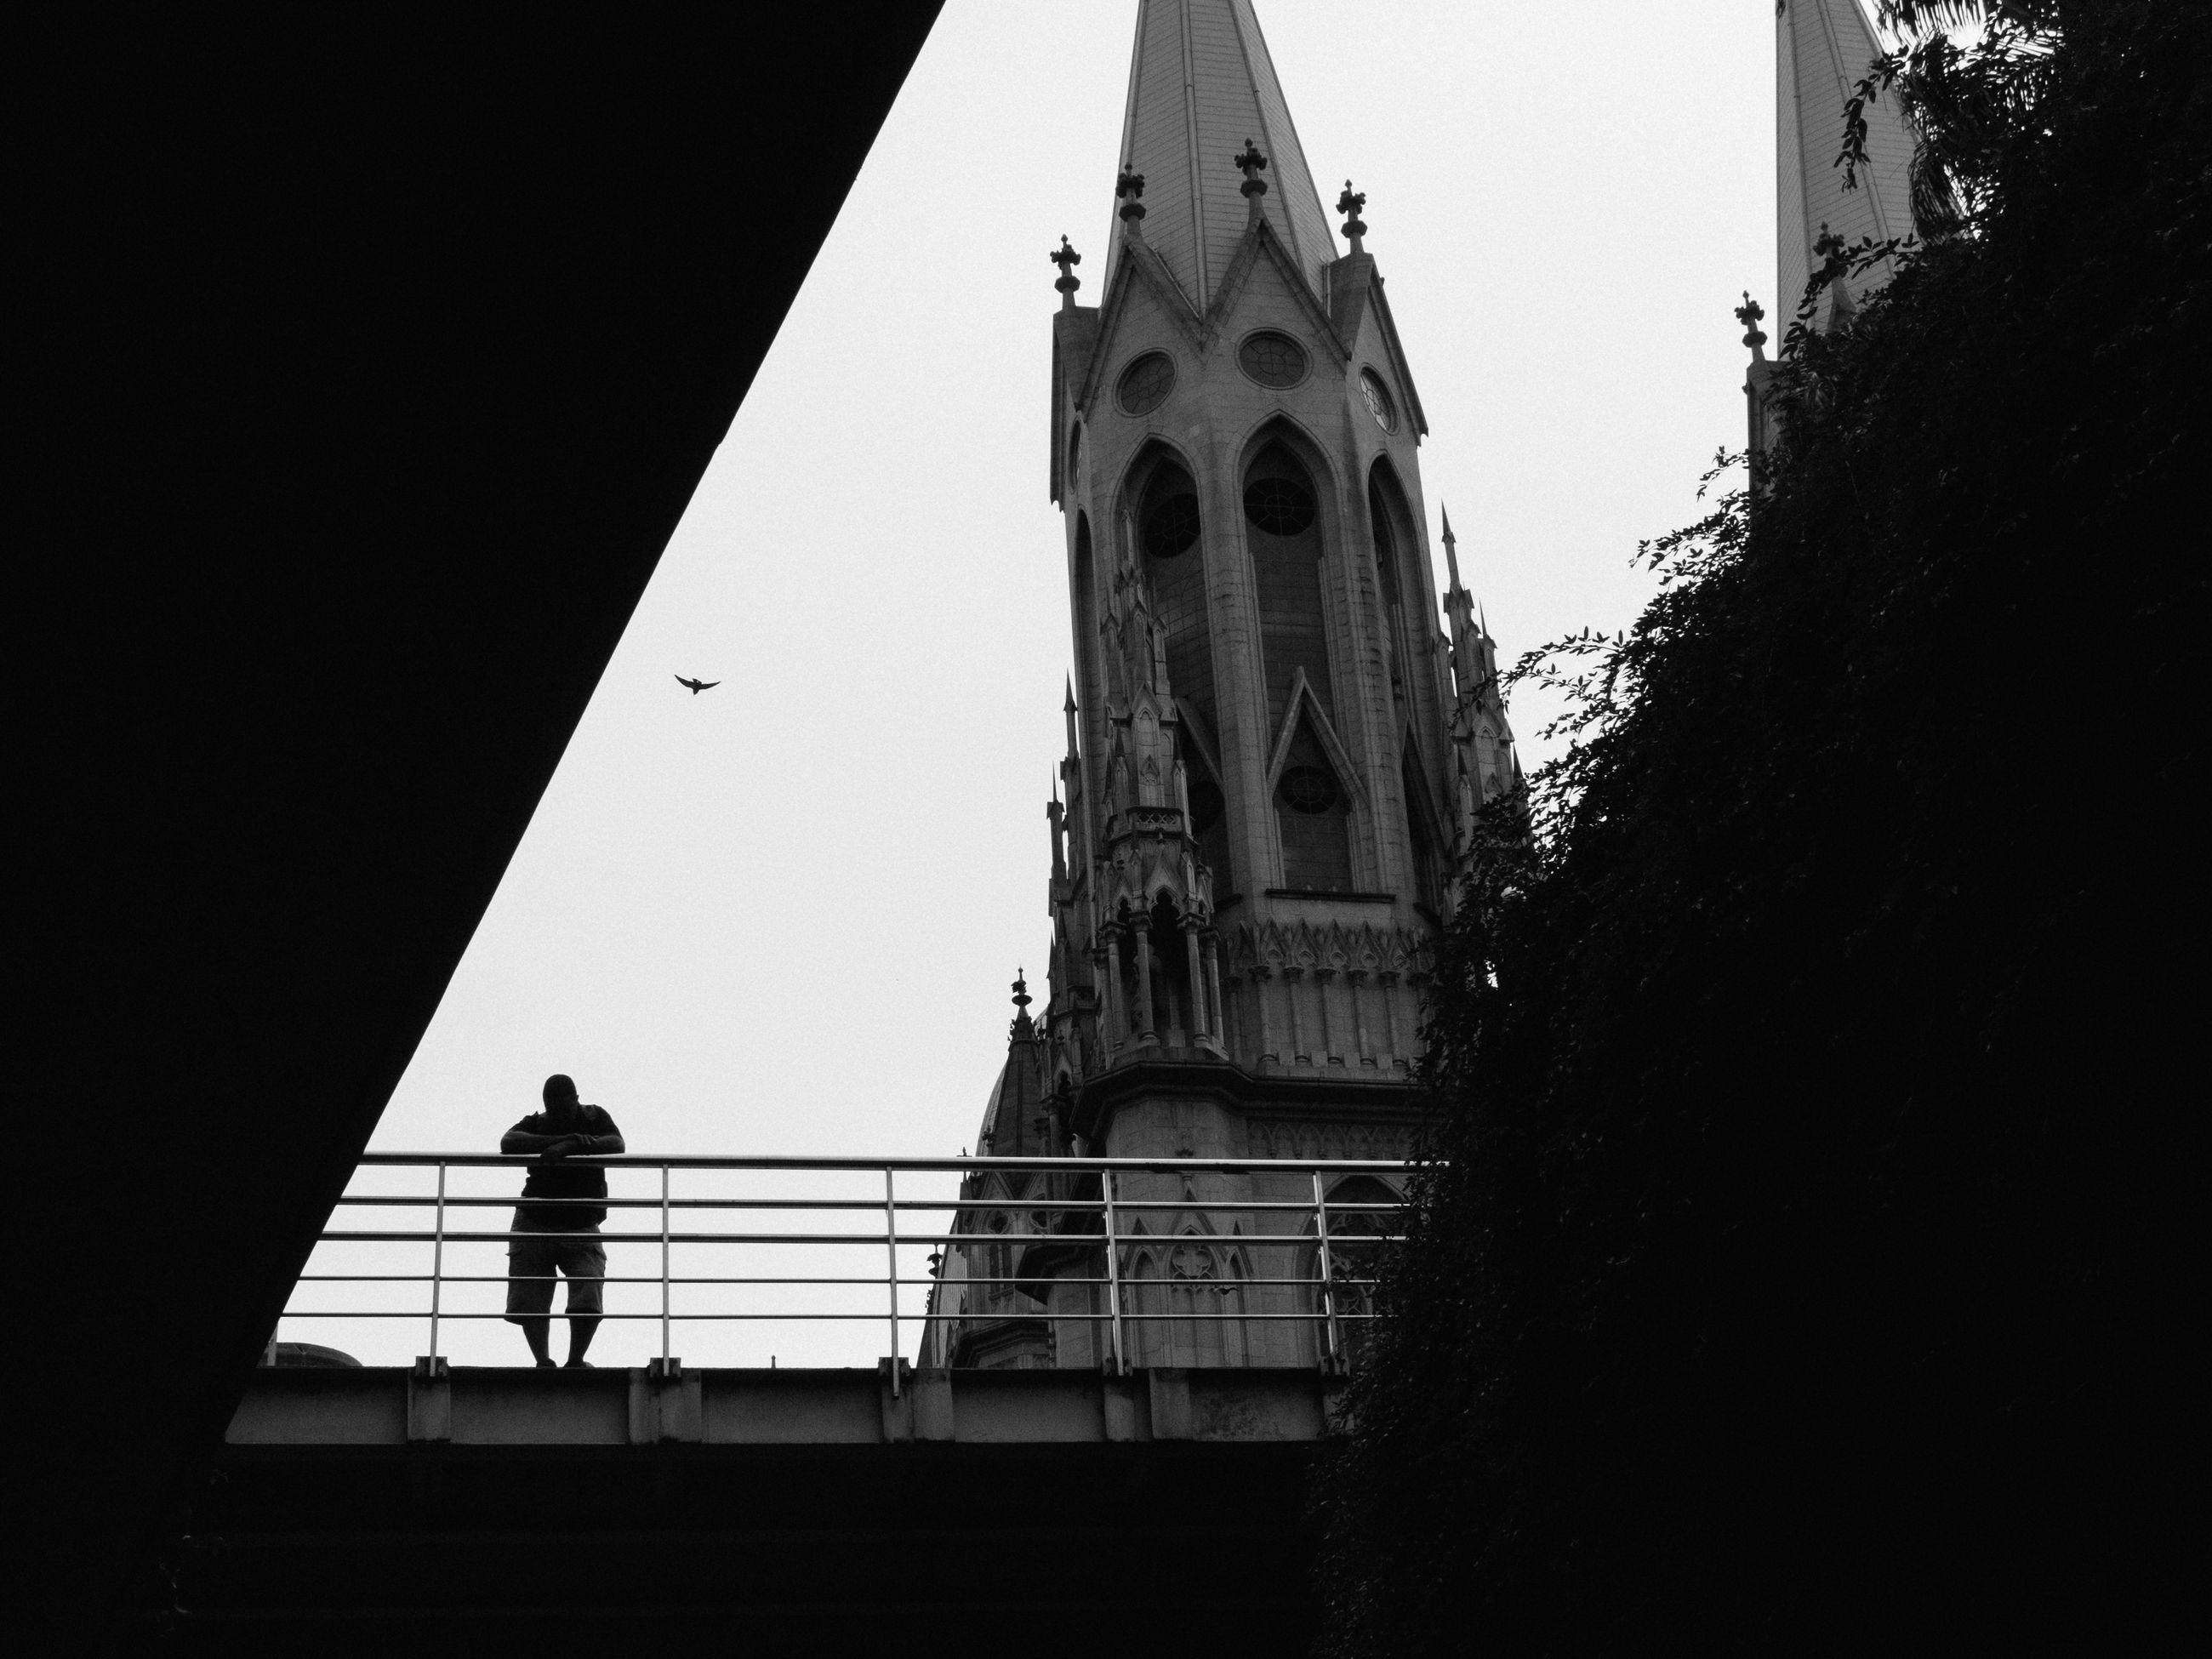 architecture, built structure, building exterior, men, lifestyles, church, walking, low angle view, person, place of worship, religion, steps, full length, standing, clear sky, silhouette, railing